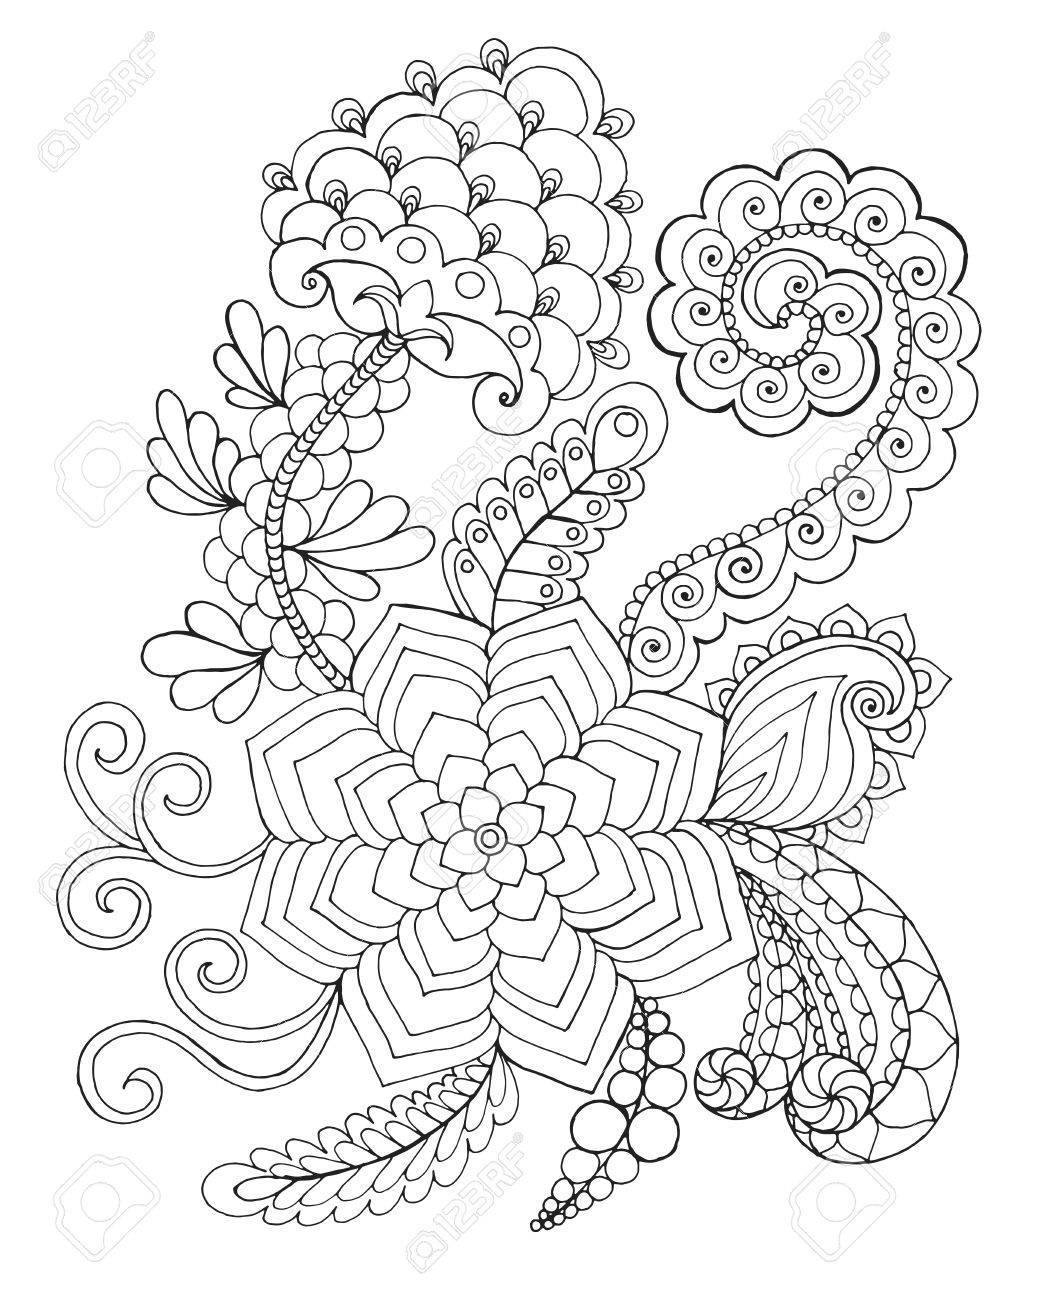 1040x1300 Stunning Fantasy Coloring Page Hand Drawn Doodle Floral Patterned